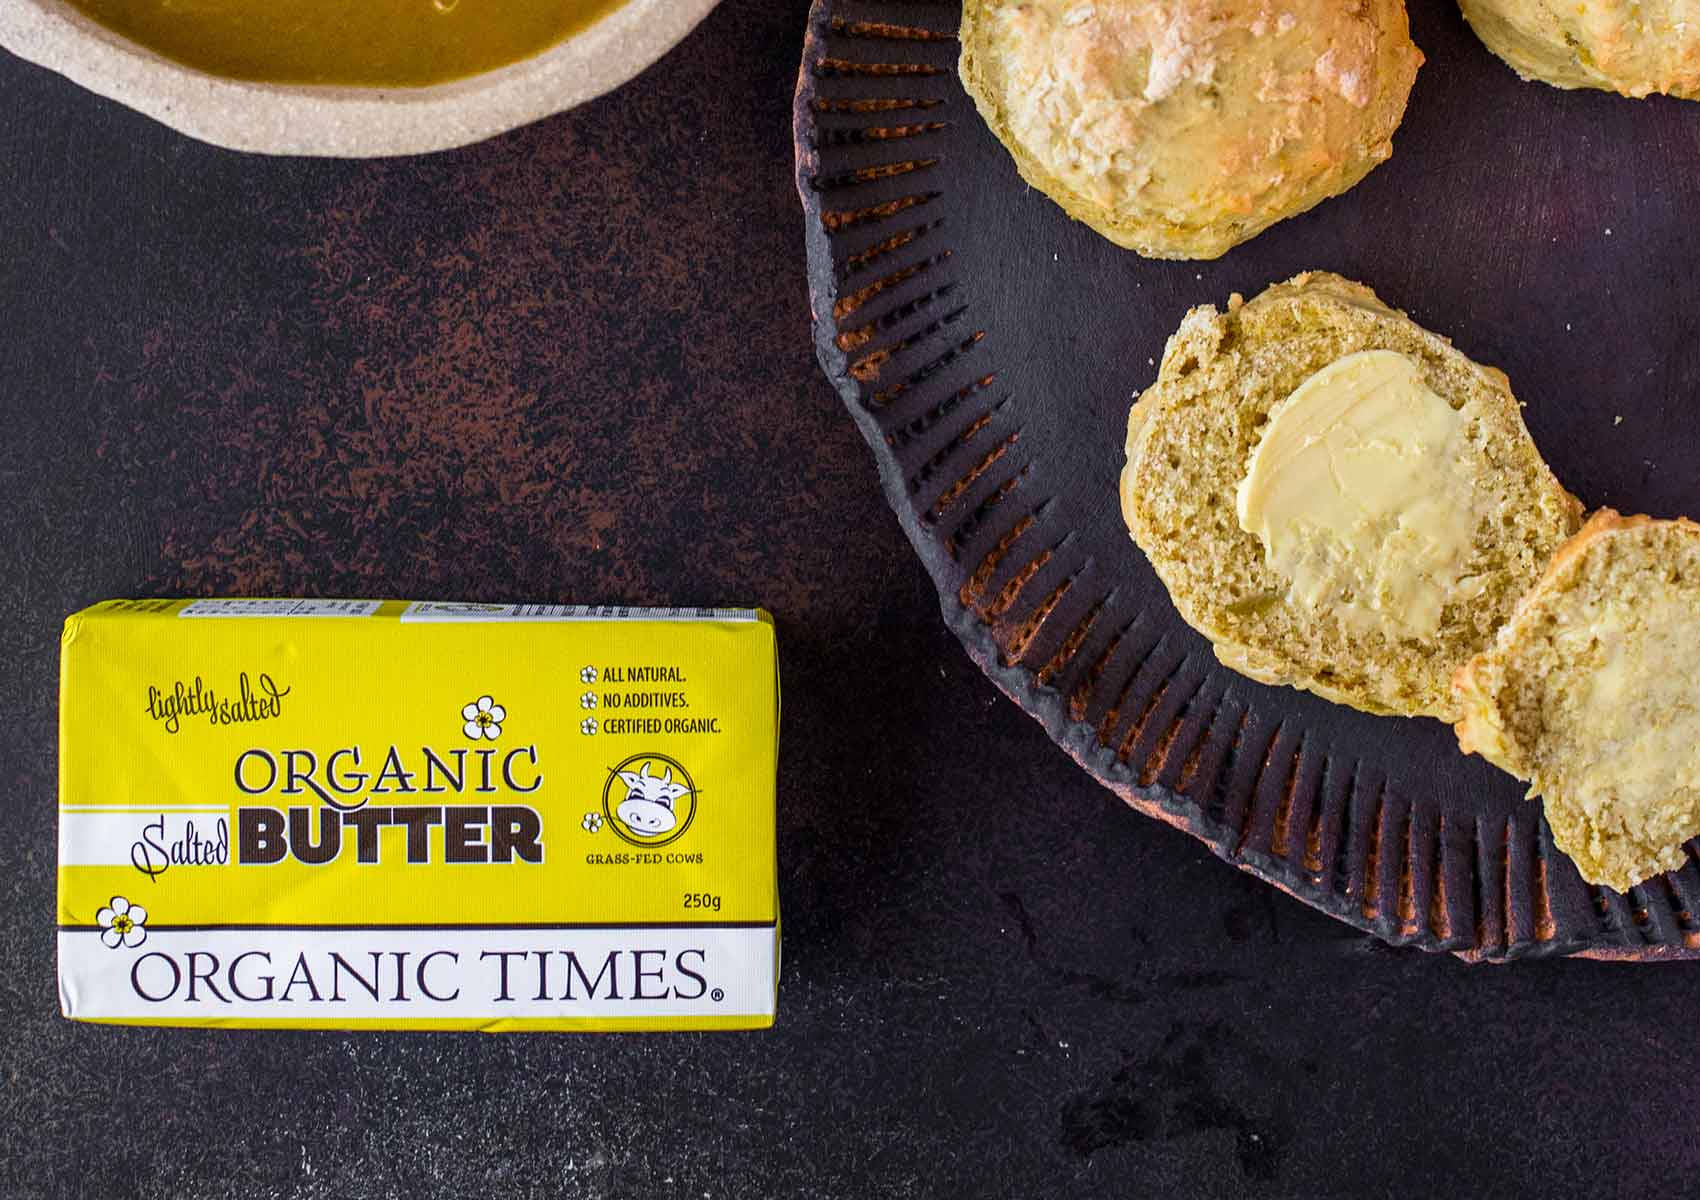 Organic Times Salted Butter next to a plate of Pumpkin Scones